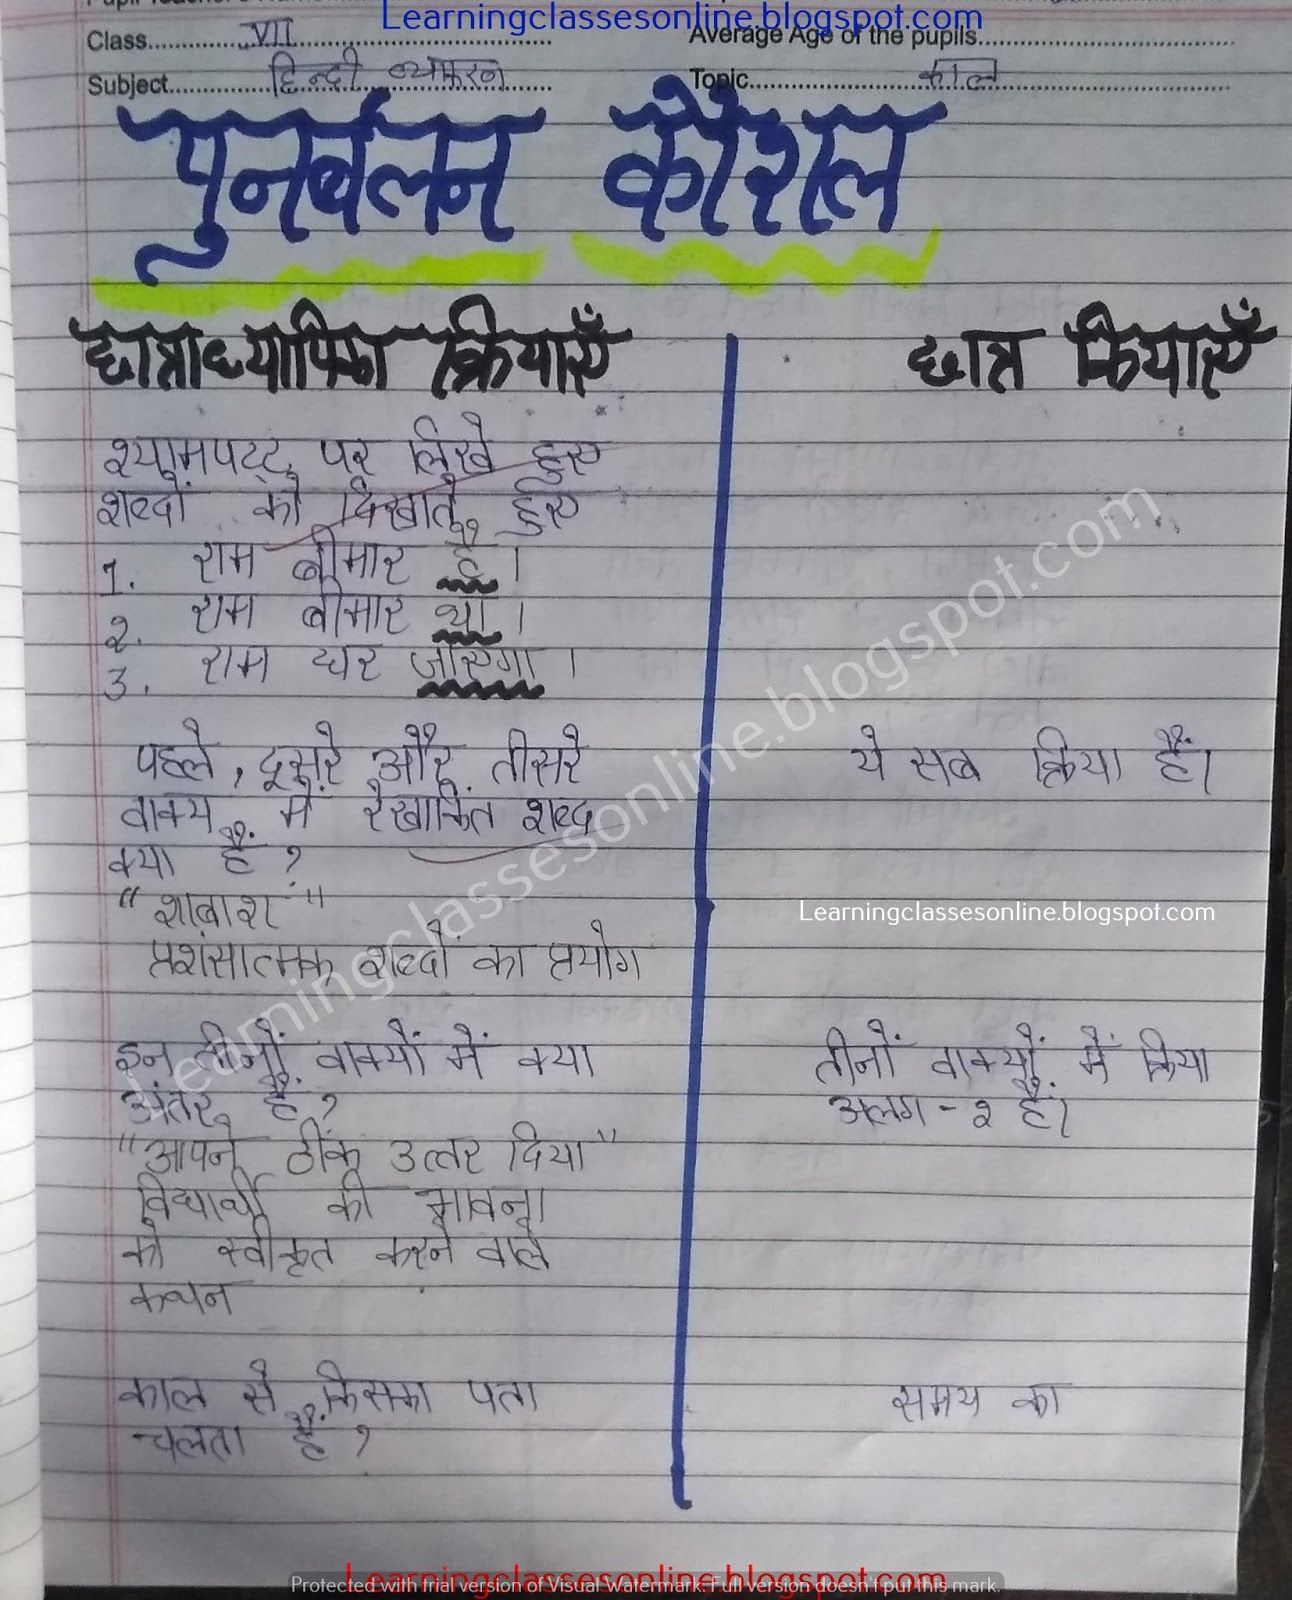 Microteaching Lesson Plan In Hindi On Punarbalan Kaushal For Teachers B Ed Deled Btc Stude In 2021 Teaching Lessons Plans Lesson Plan In Hindi Grammar Lesson Plans [ 1600 x 1292 Pixel ]